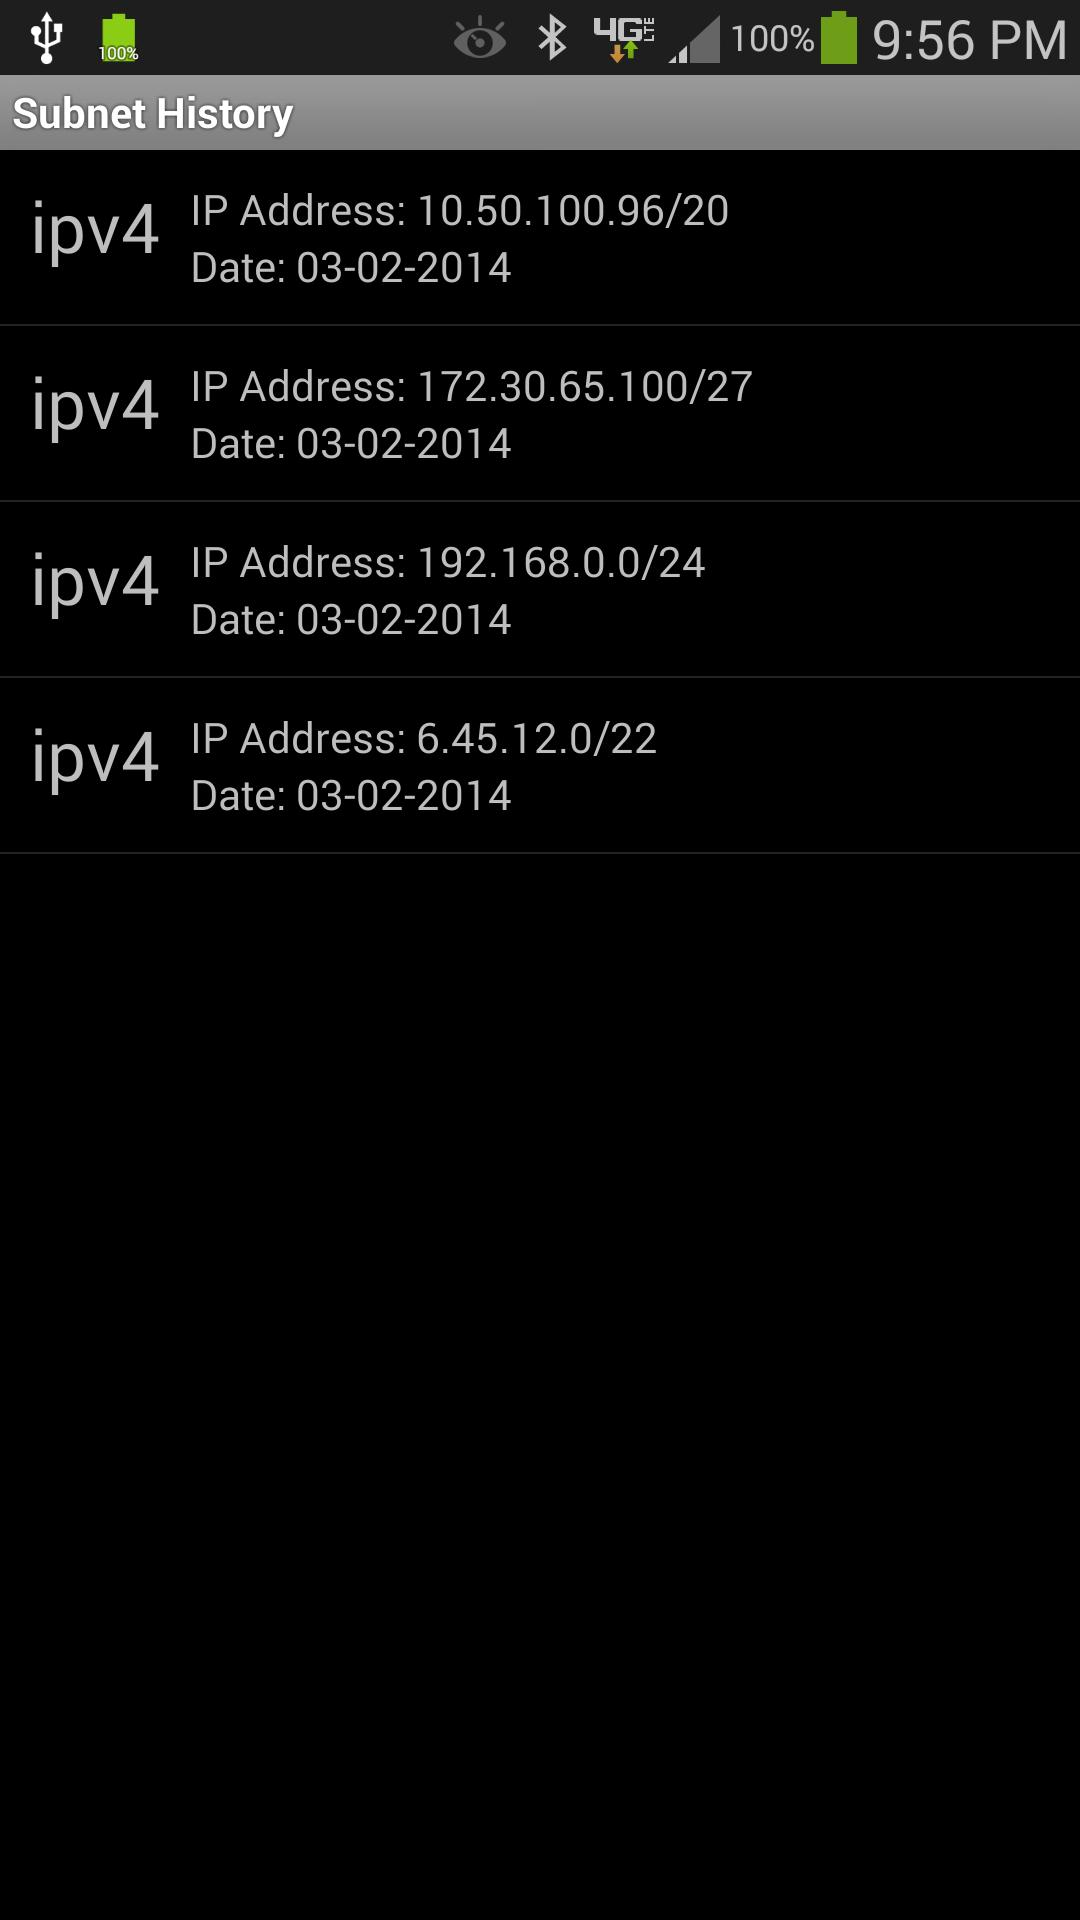 ipv4 Subnet Calculator for Android - APK Download